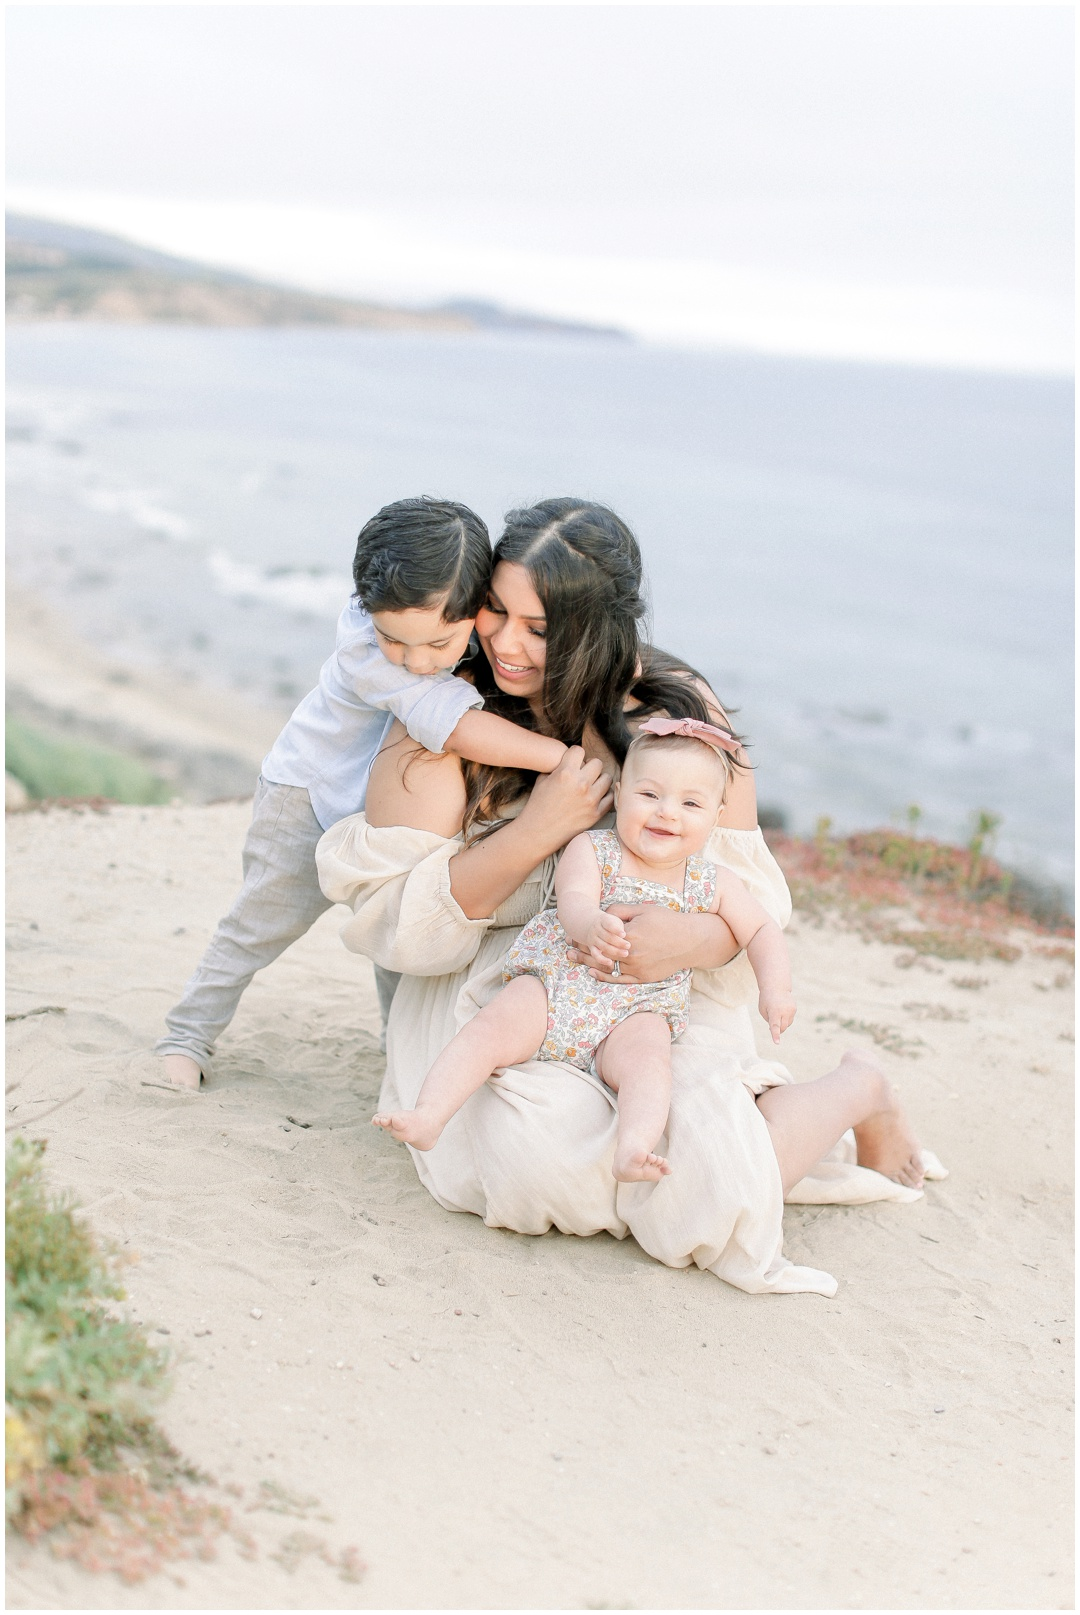 Newport_Beach_Newborn_Light_Airy_Natural_Photographer_Newport_Beach_Photographer_Orange_County_Family_Photographer_Cori_Kleckner_Photography_Huntington_Beach_Photographer_Family_OC_Newborn_Natalie_Nunez_Thomas_Nunez_Natalie_Roca_Rosh_Nunez_Family_3554.jpg